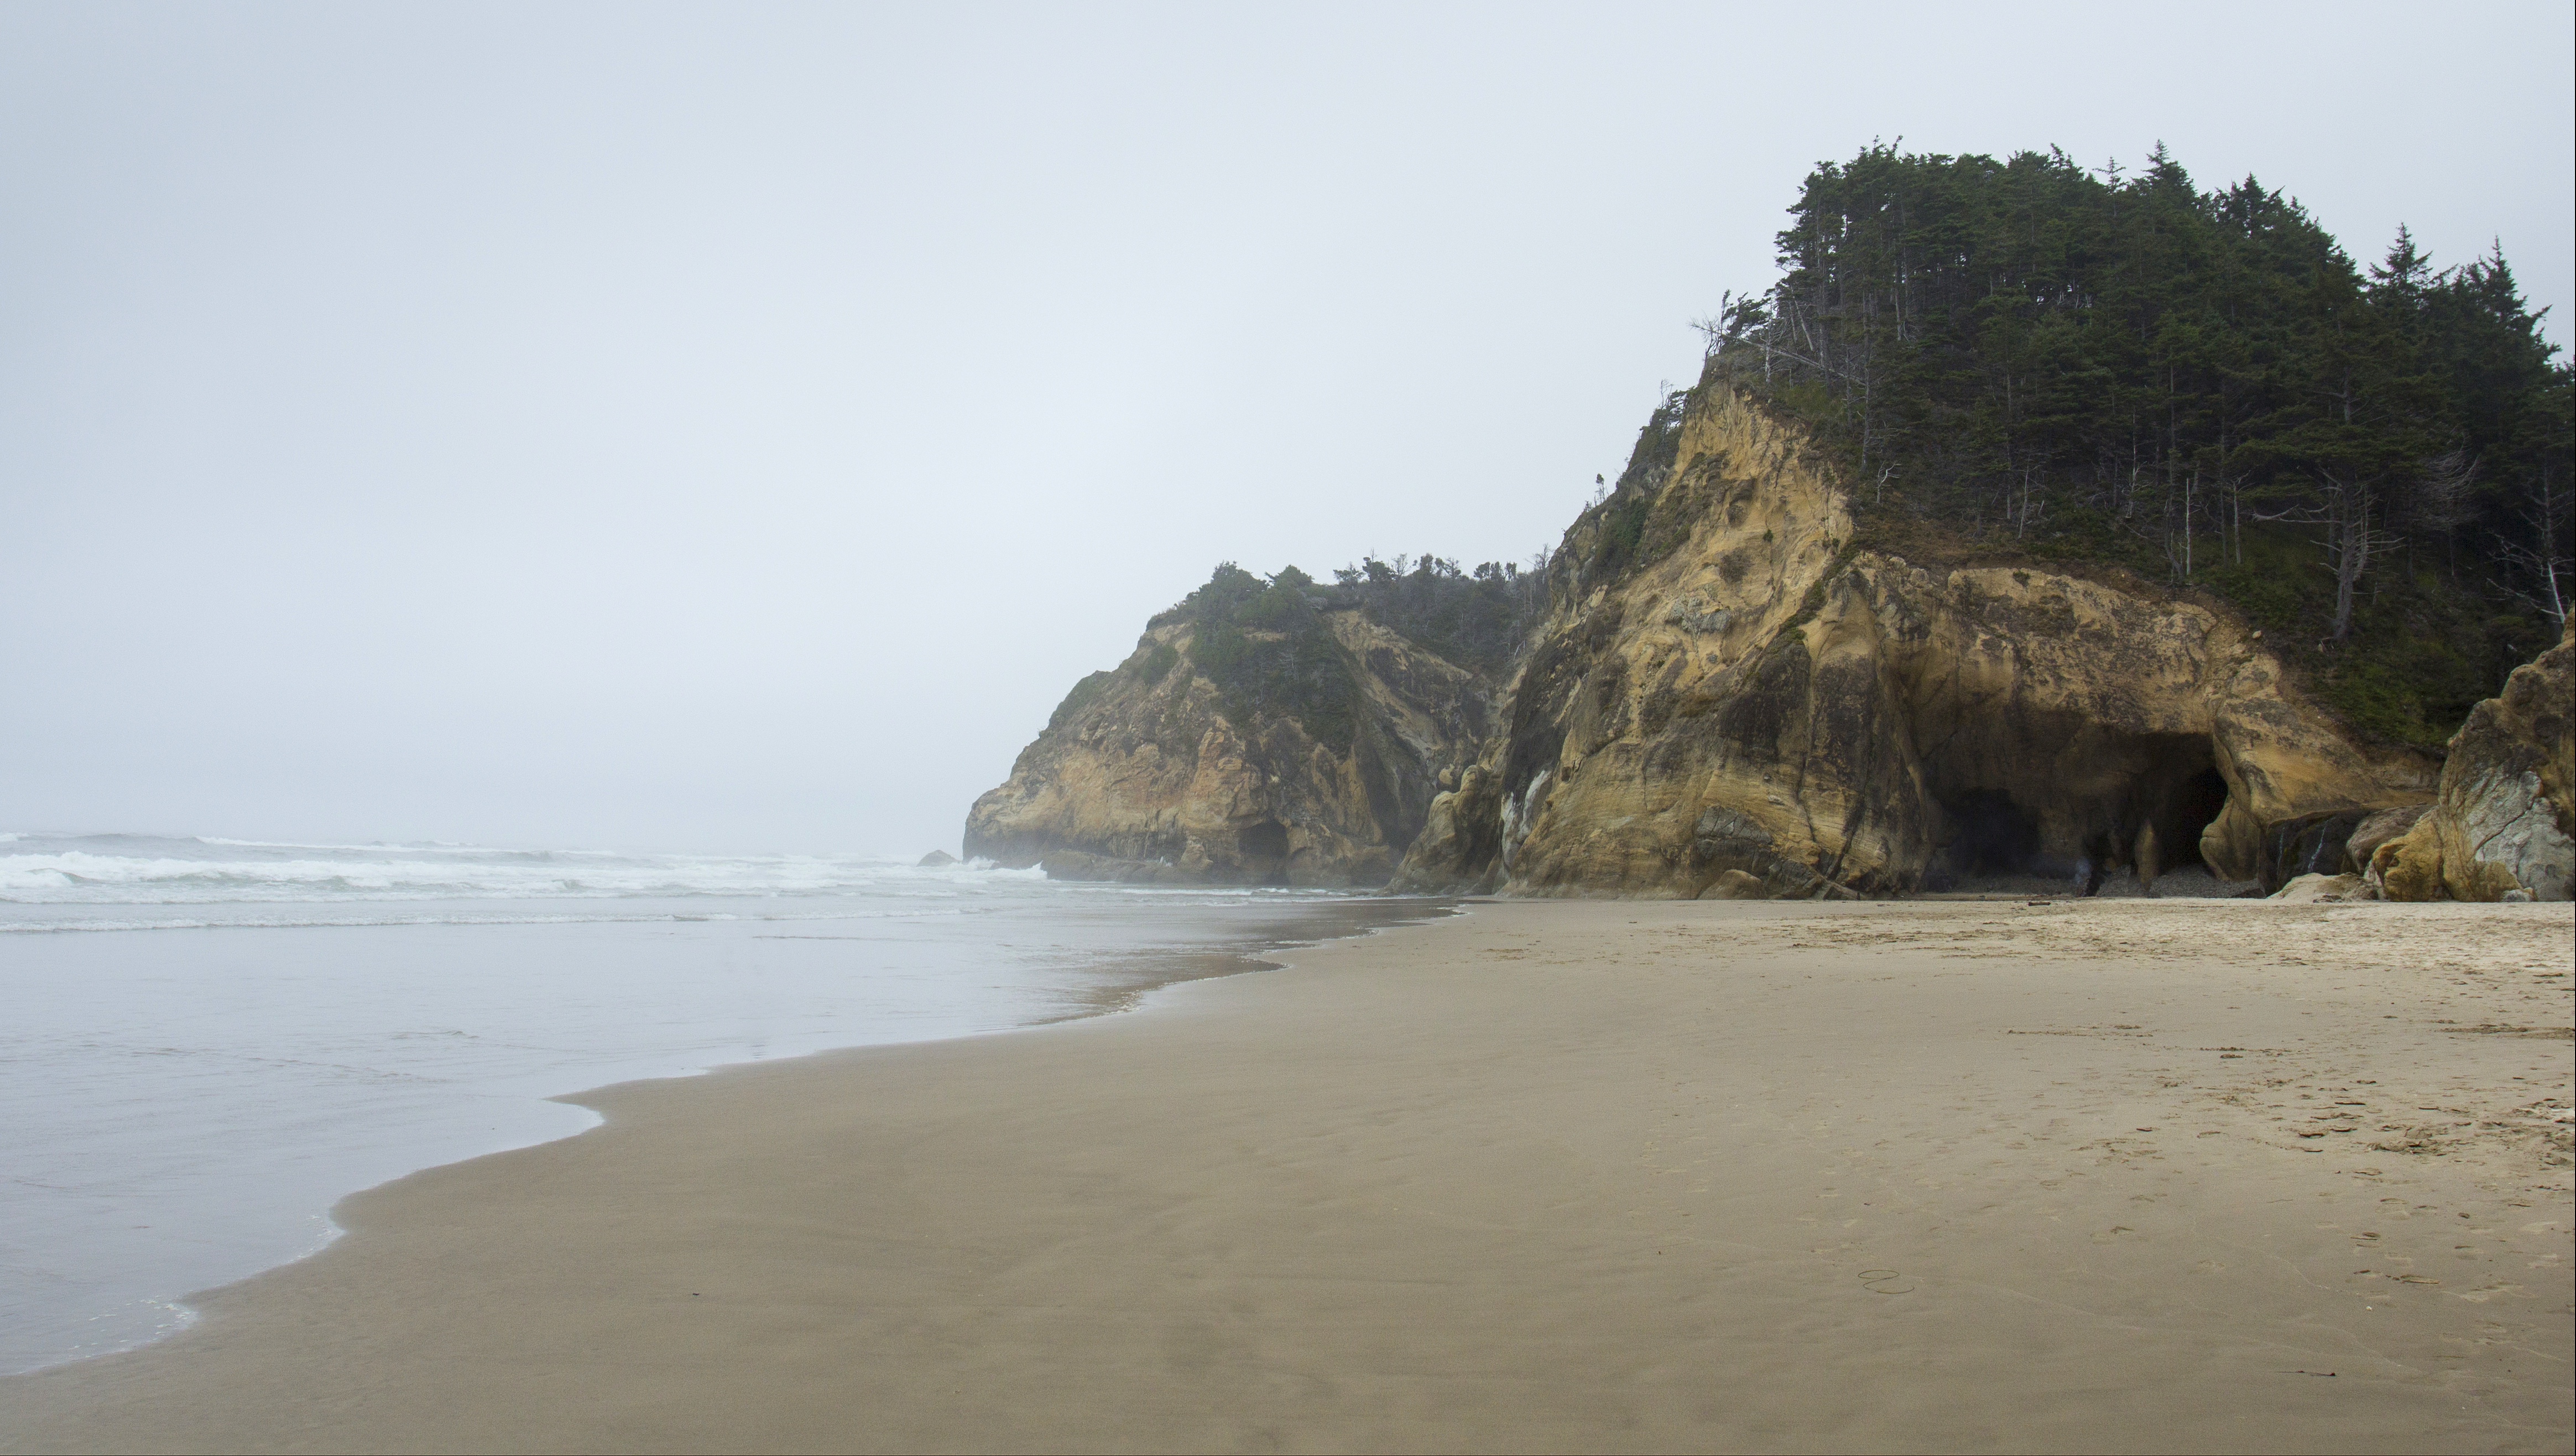 Hug beach, oregon photo